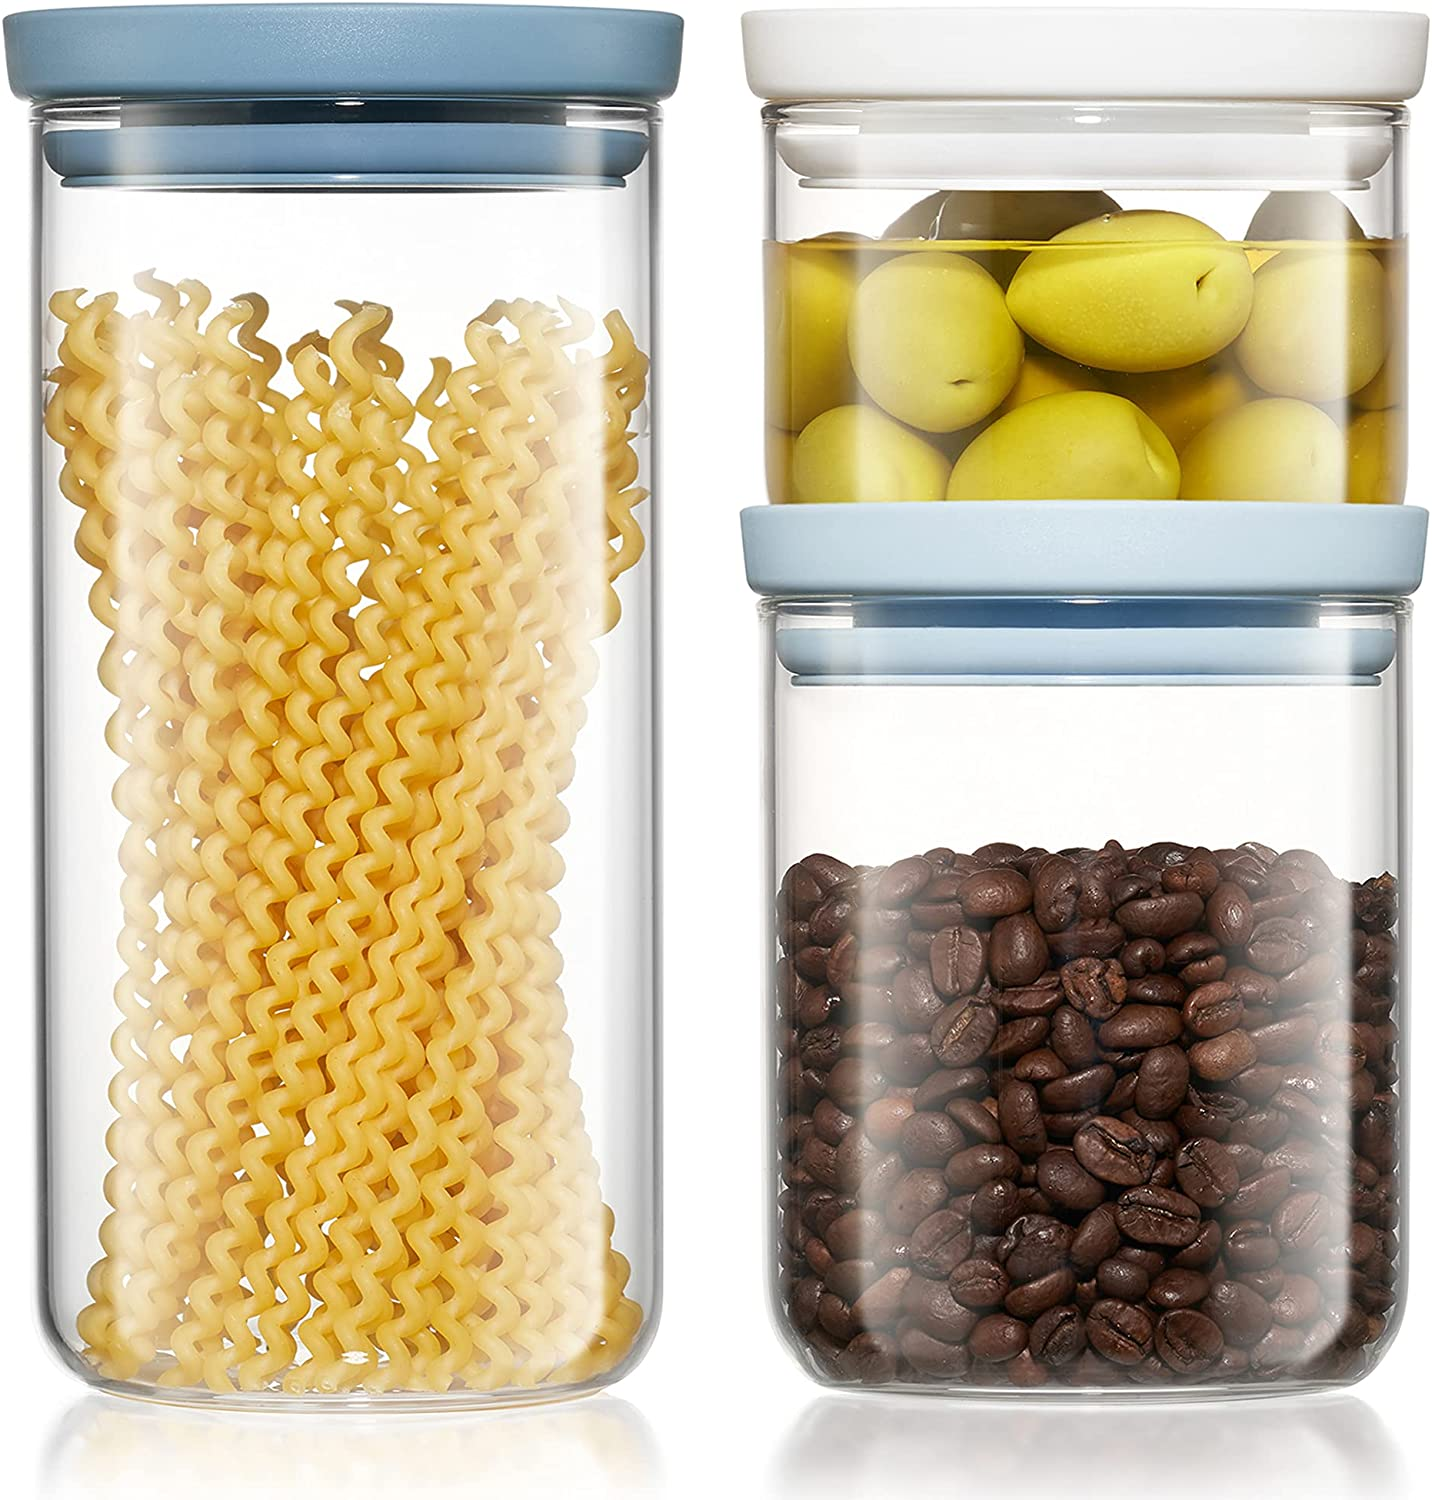 Tucson Mall Freyian Glass Canisters Max 59% OFF sets for the kitchen Set stackabl - of 3